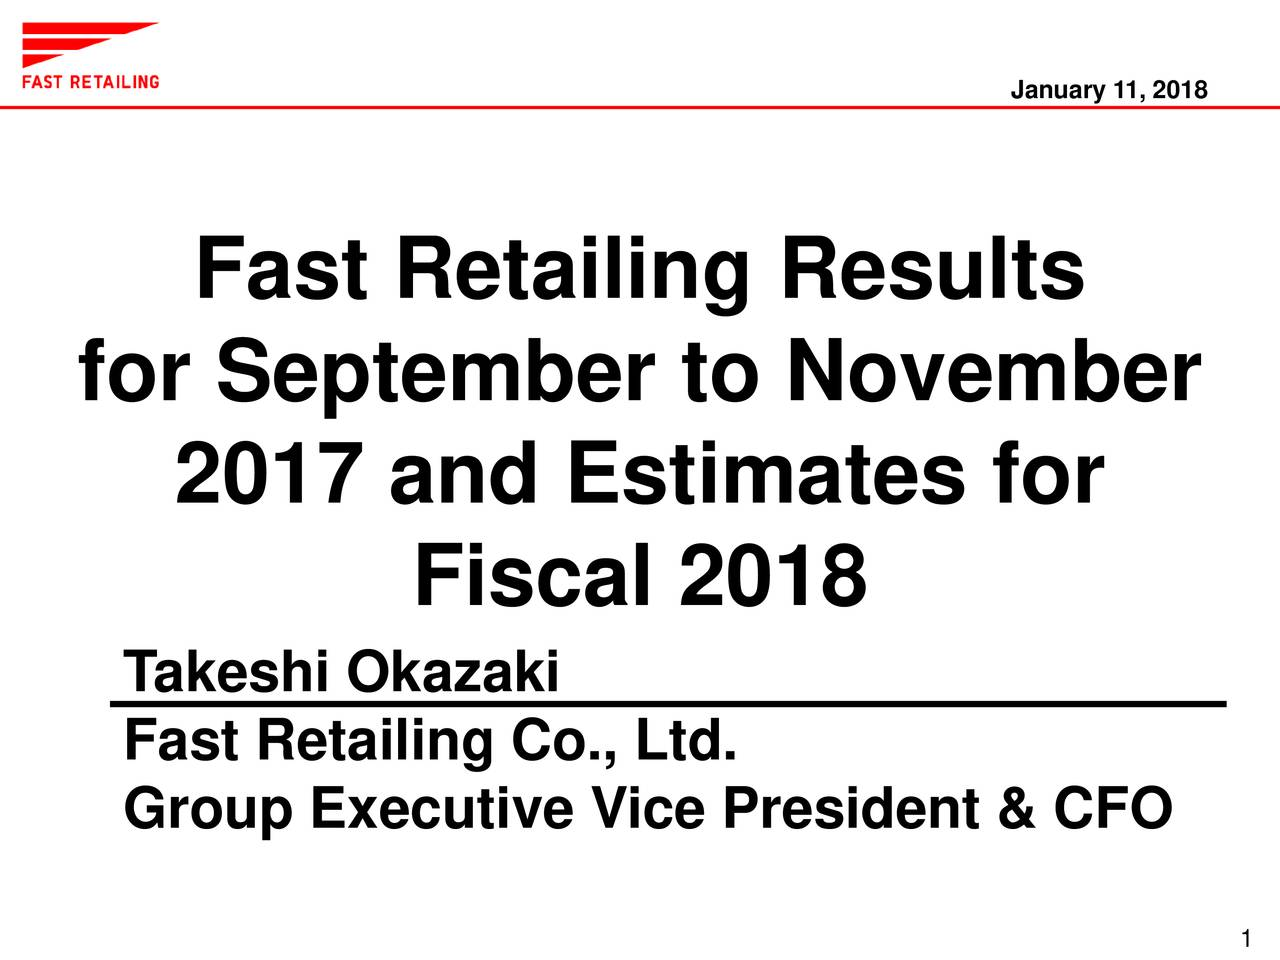 Fast Retailing Results for September to November 2017 and Estimates for Fiscal 2018 Takeshi Okazaki Fast Retailing Co., Ltd. Group Executive Vice President & CFO